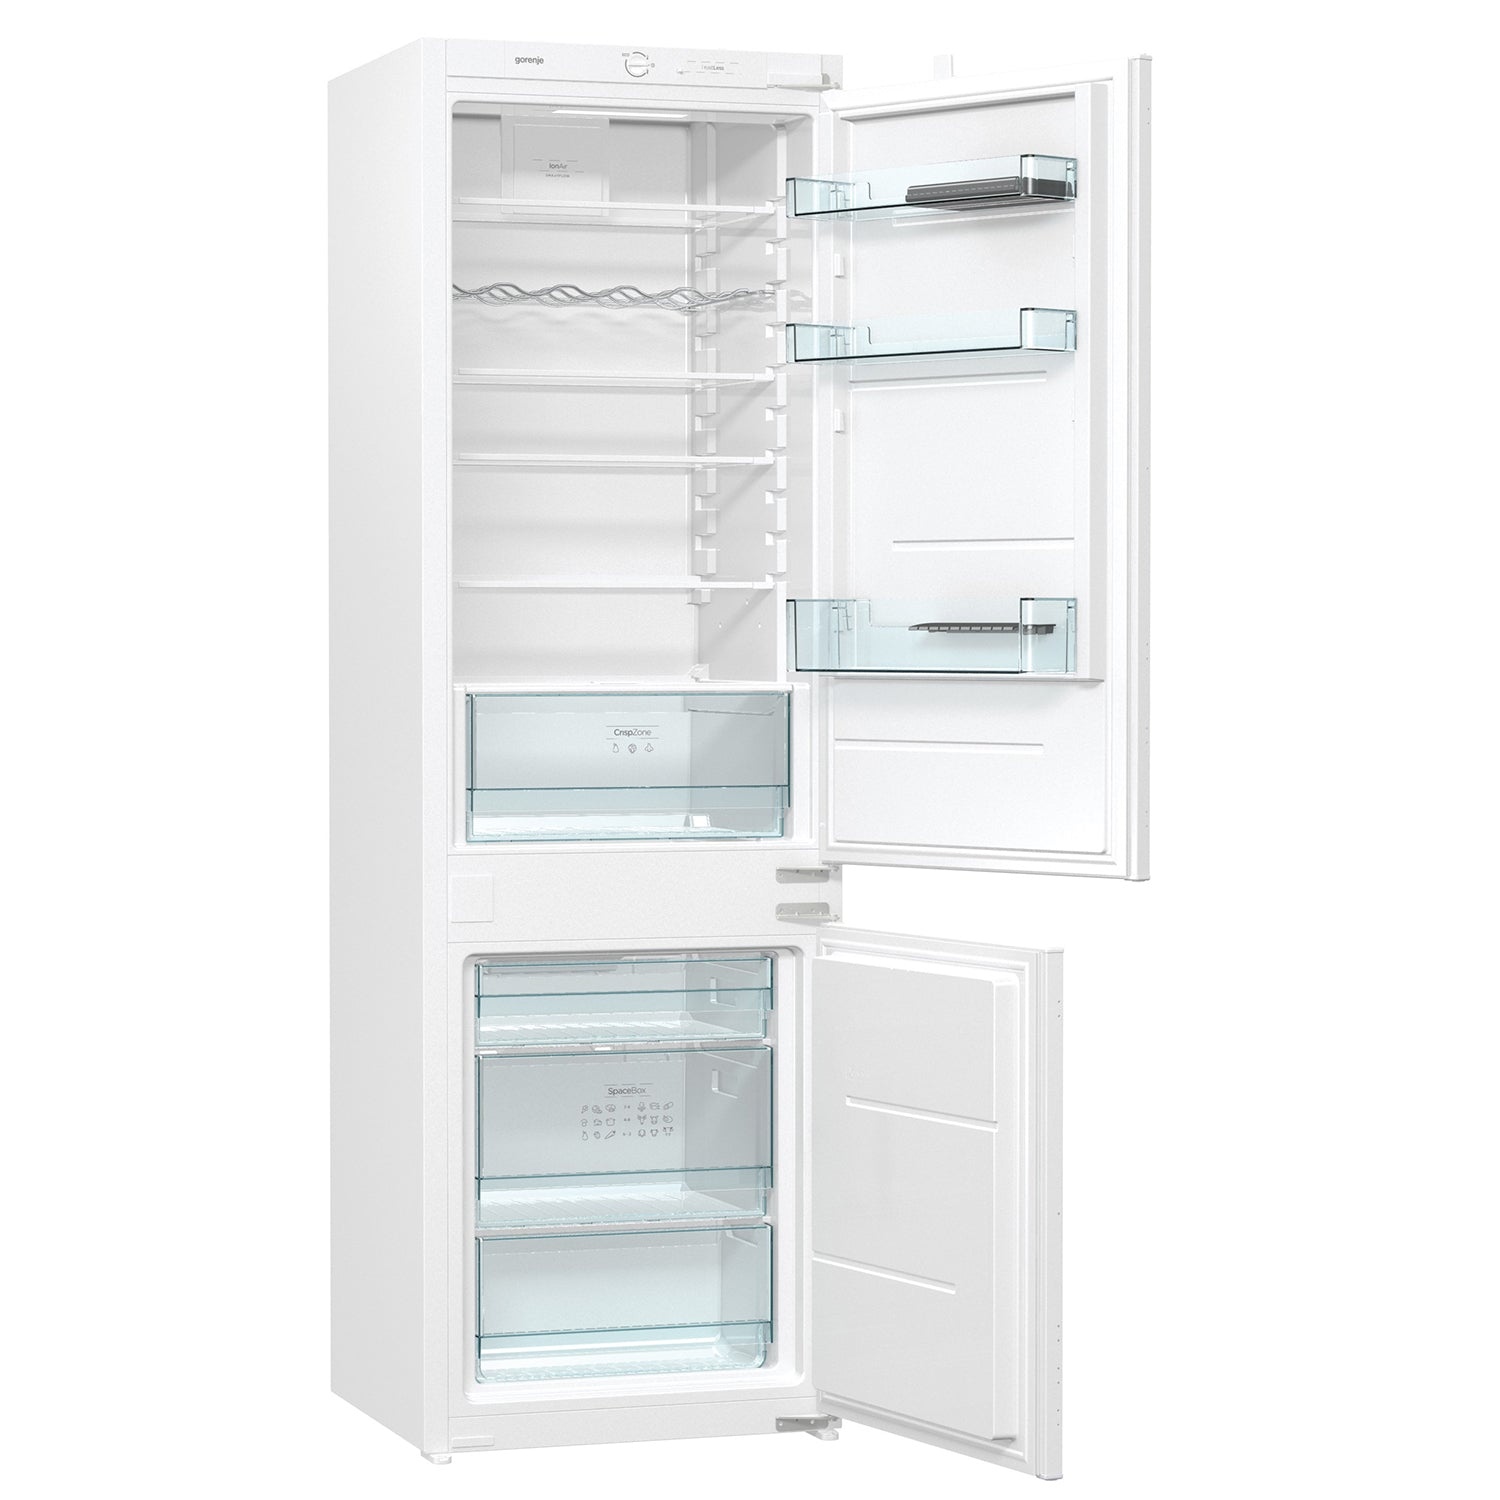 Gorenje 258L(9.1cu.ft) Built-in Refrigerator with Freezer in White